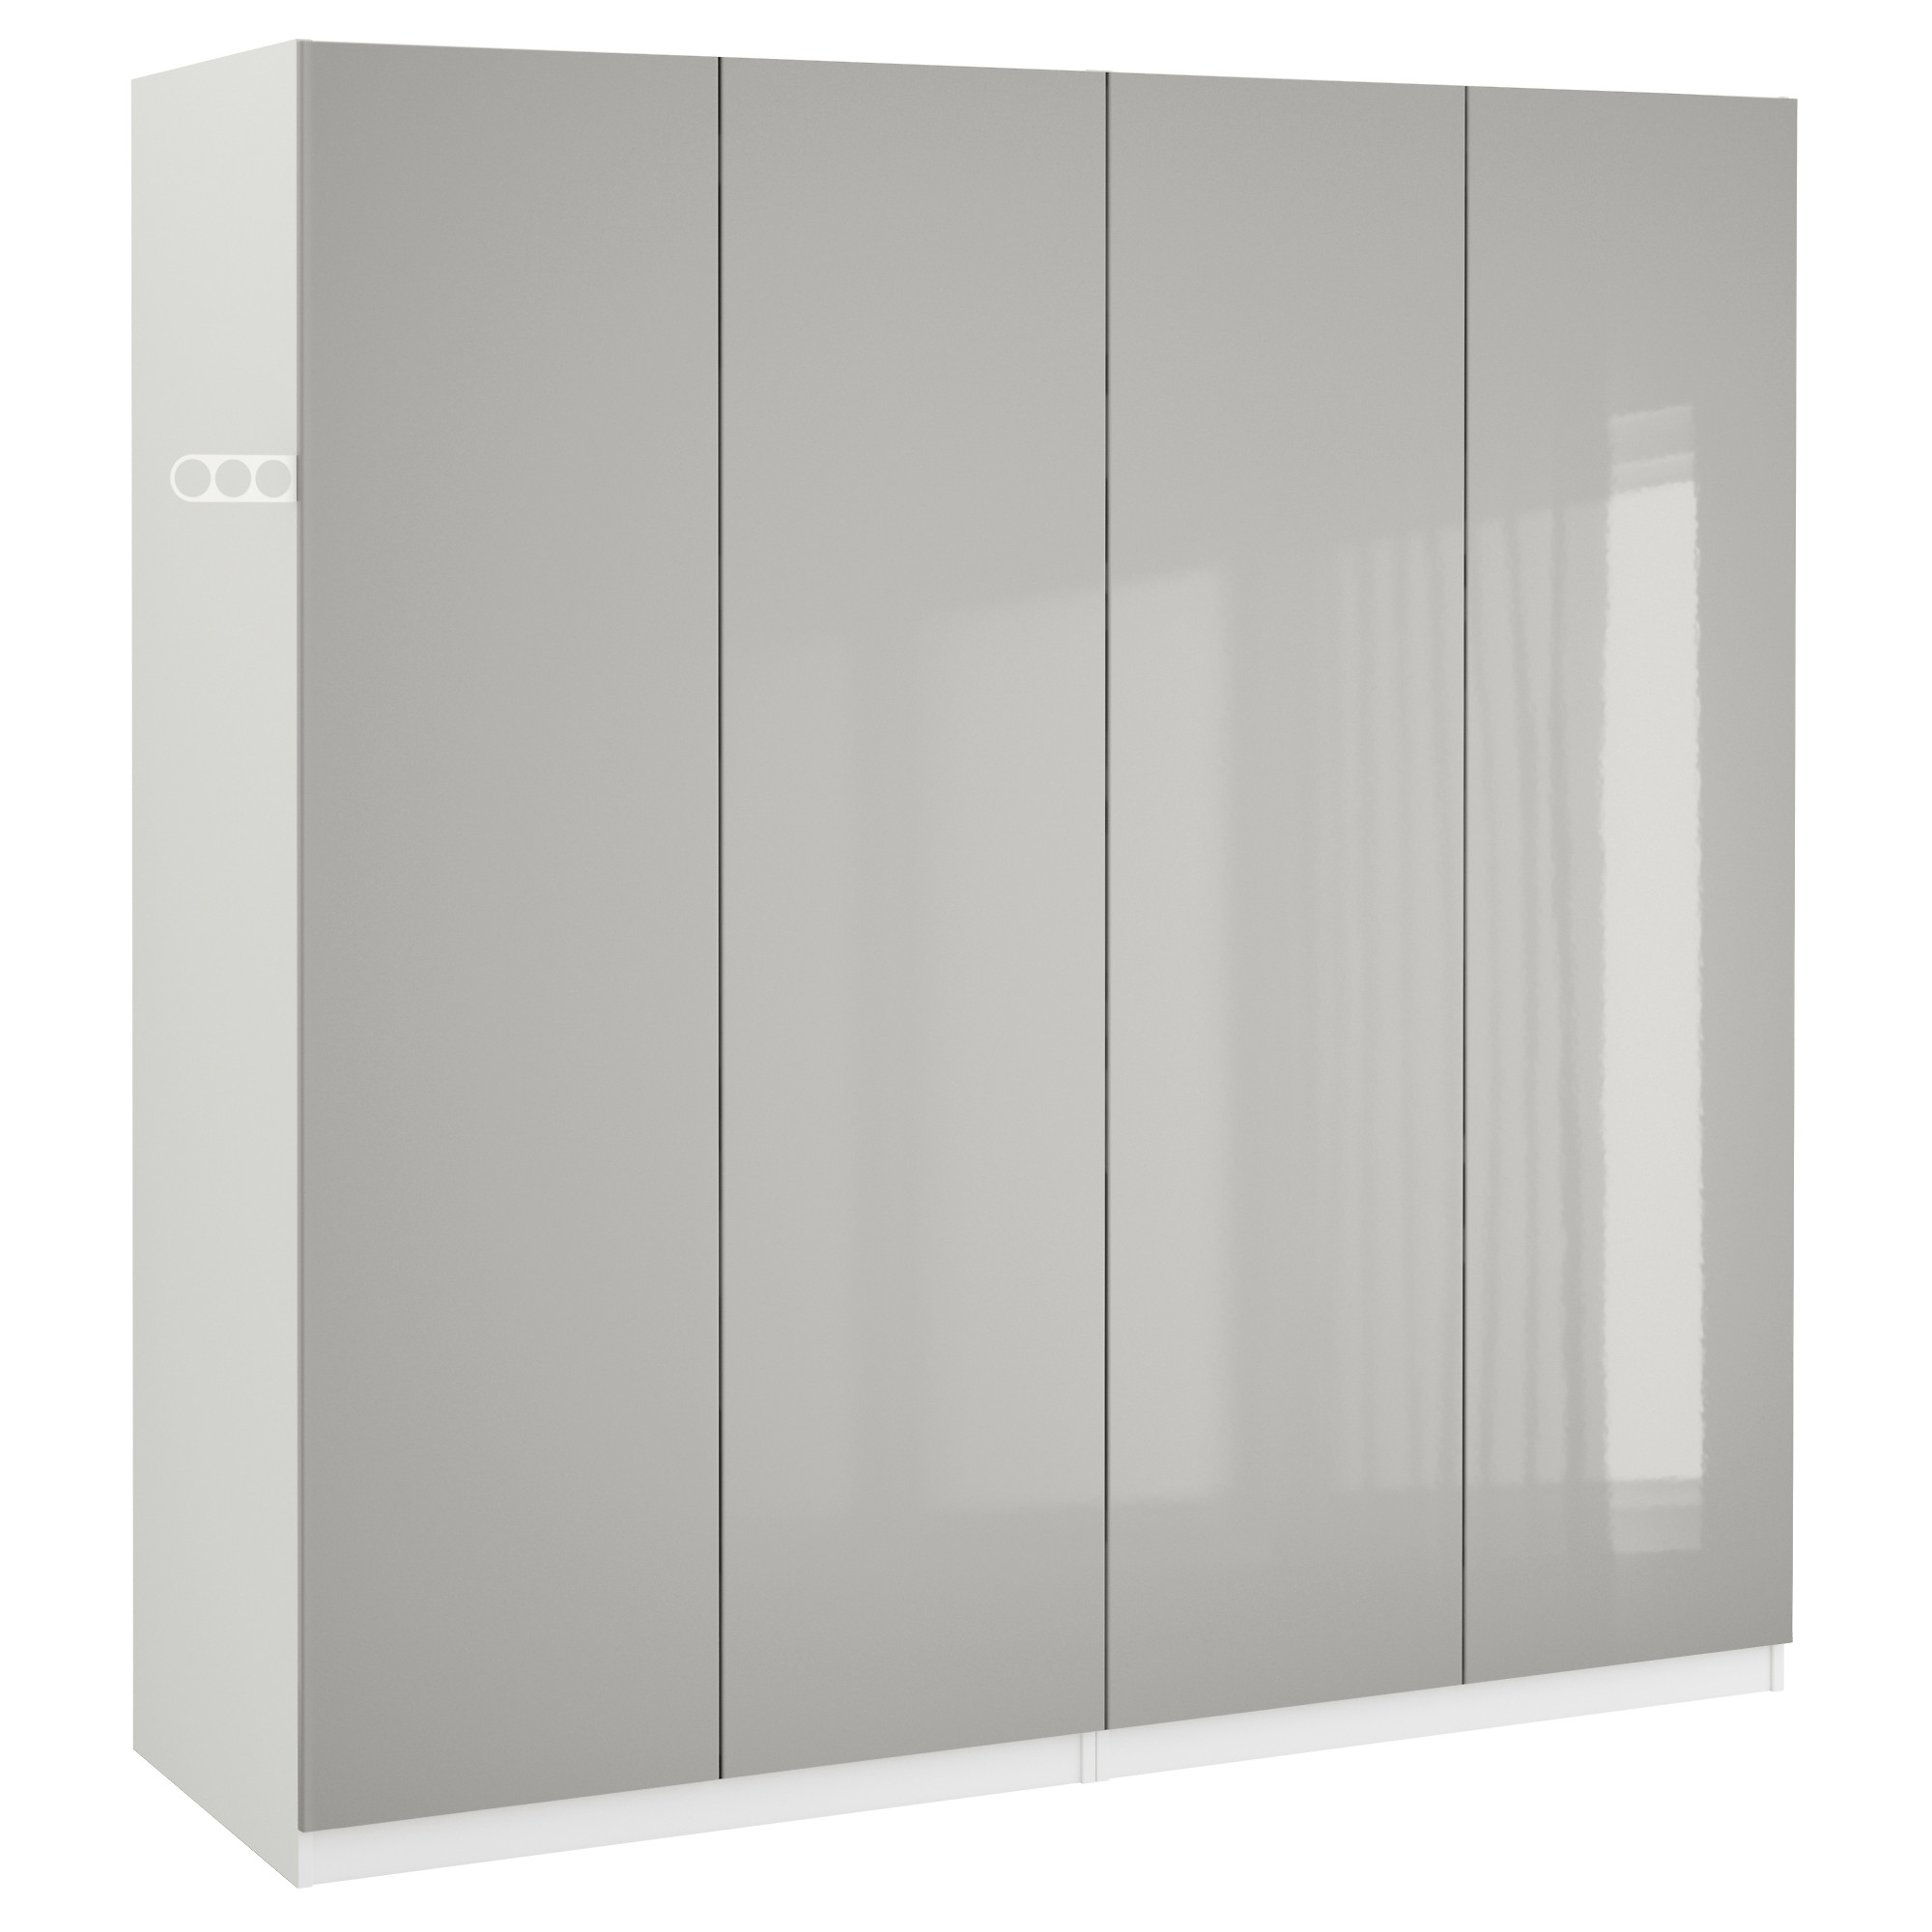 "Widely Used High Gloss White Wardrobes With Regard To Pax Wardrobe – 78 3/4X23 5/8X79 1/4 "" – Ikea (View 15 of 15)"